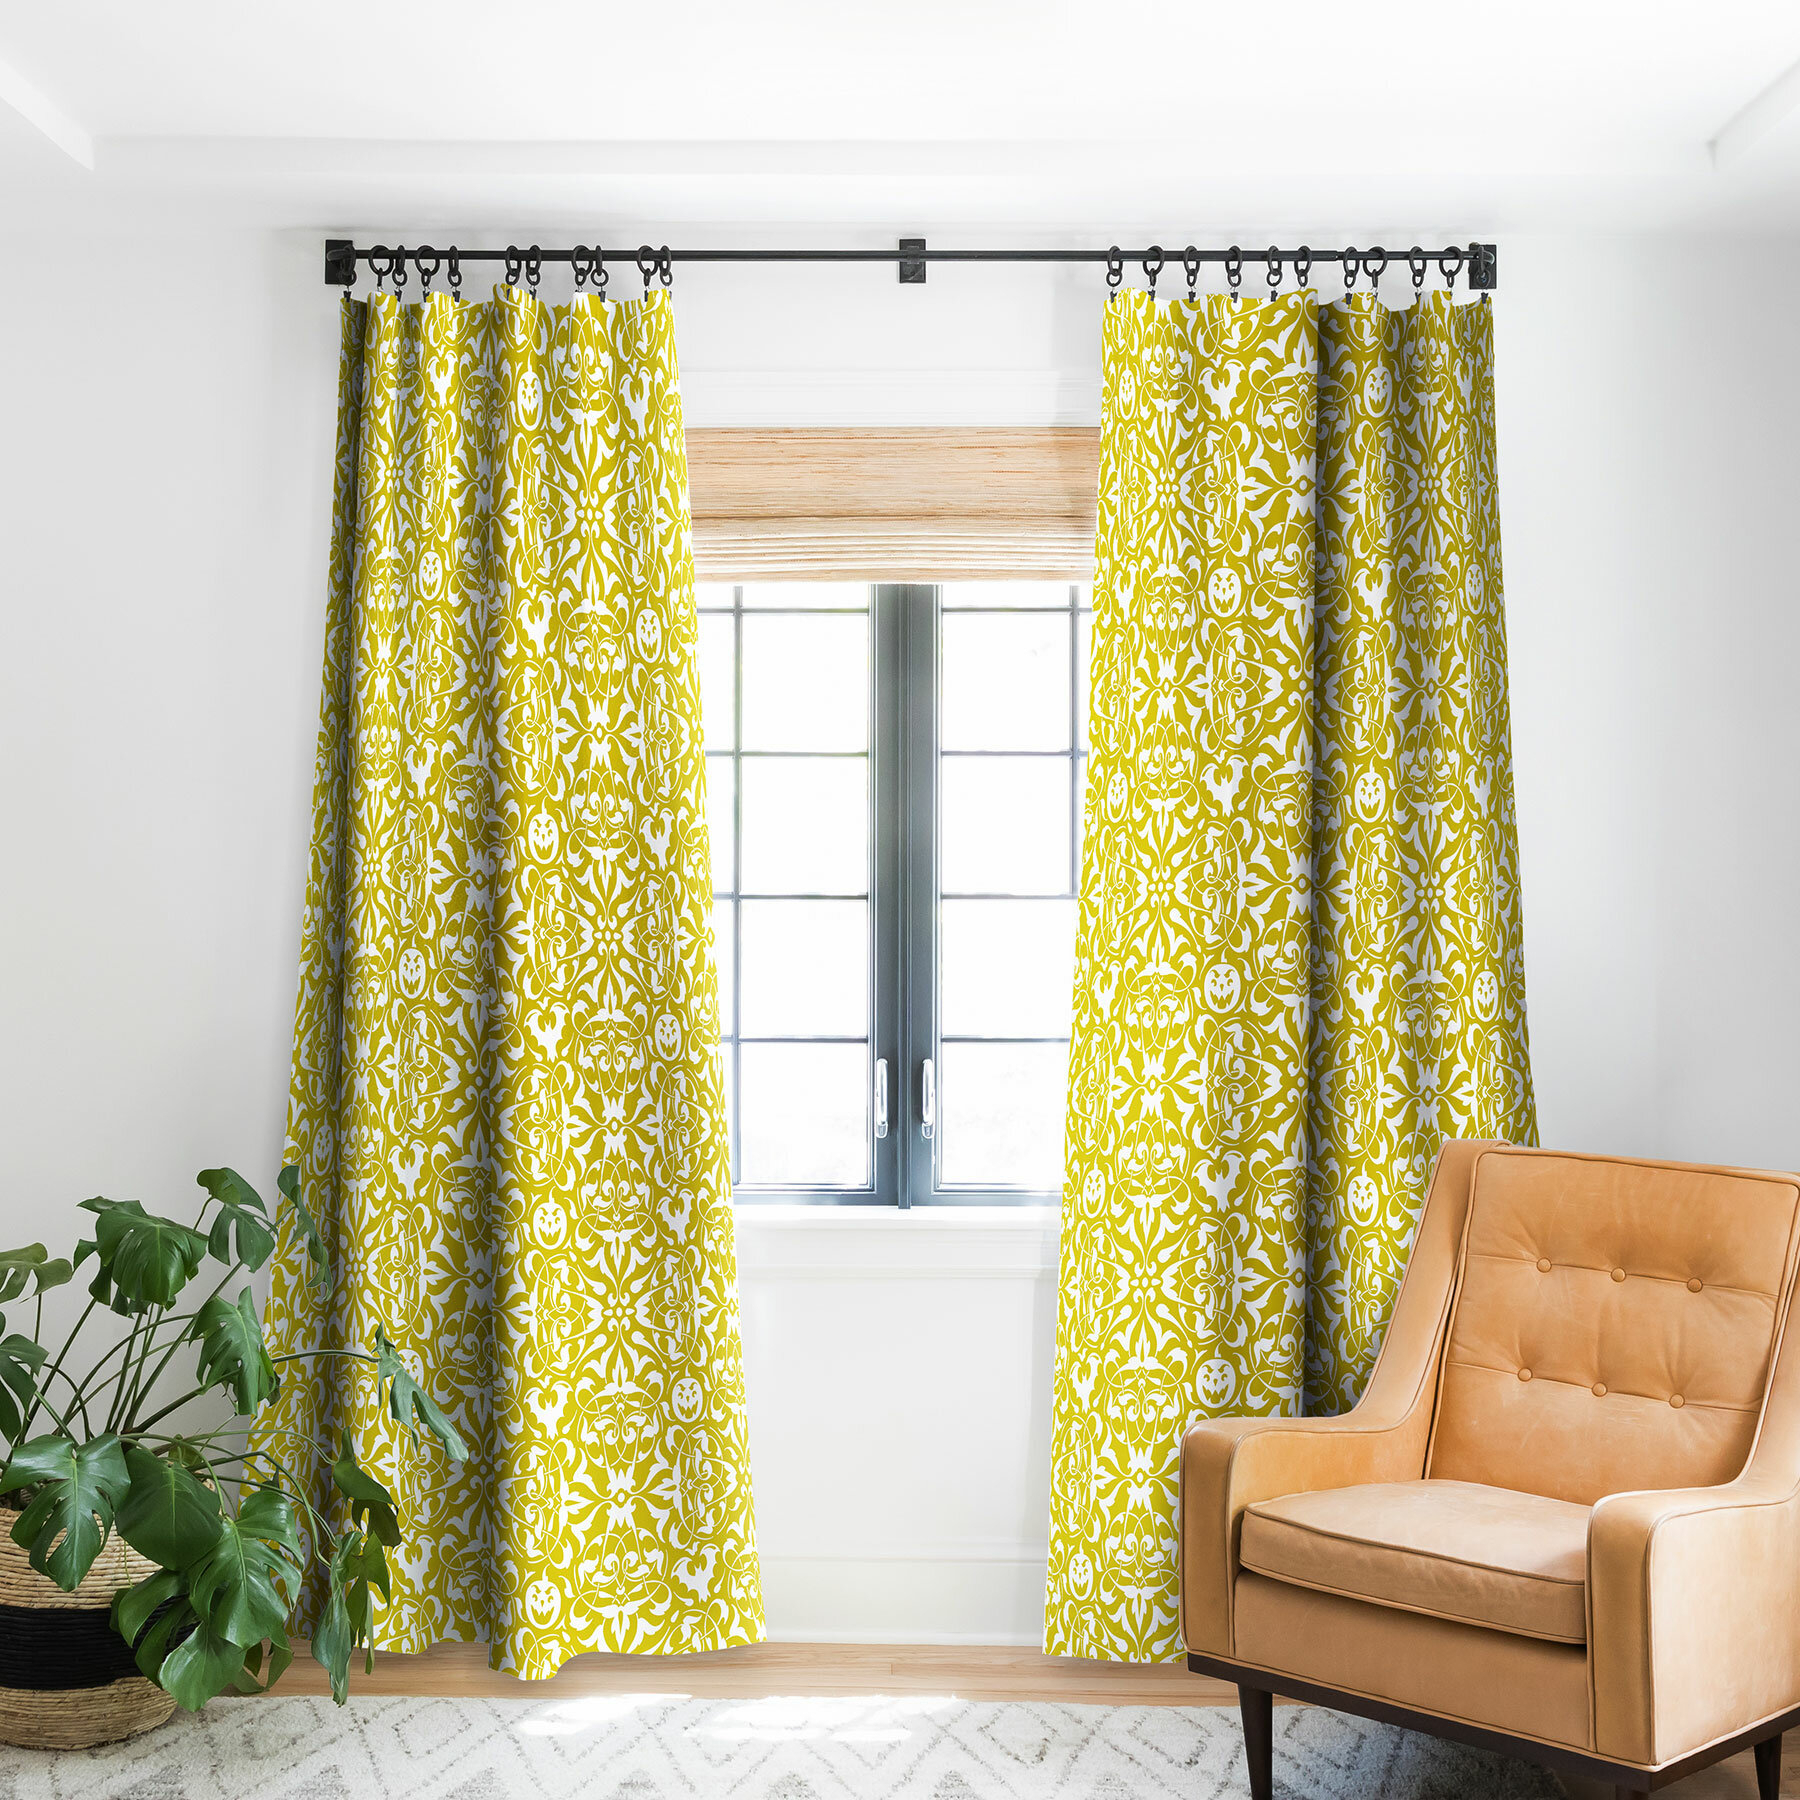 Heather Dutton Gothique Glow Blackout Pinch Pleat Single Curtain Panel Pertaining To Lambrequin Boho Paisley Cotton Curtain Panels (View 12 of 20)